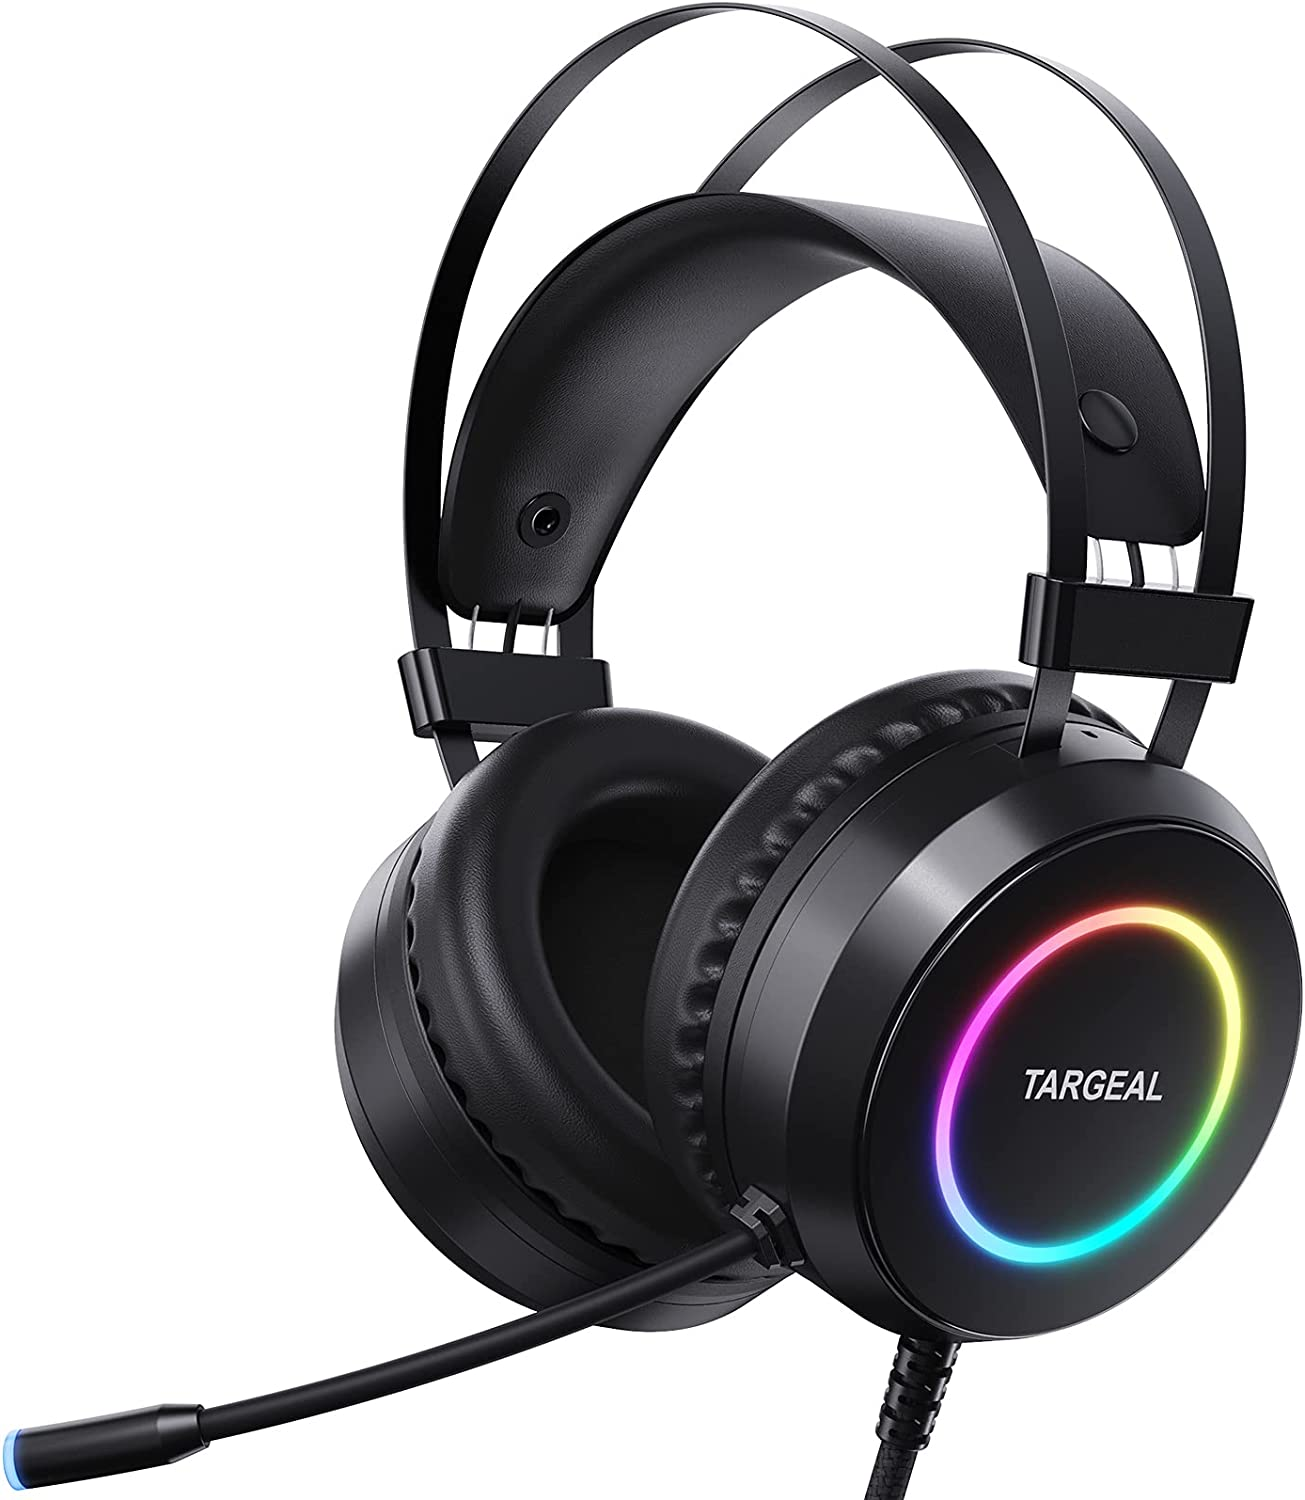 Targeal Max 72% OFF 4 Mode 7.1 Surround Sound PC Headset for PS4 Gaming Latest item La 5